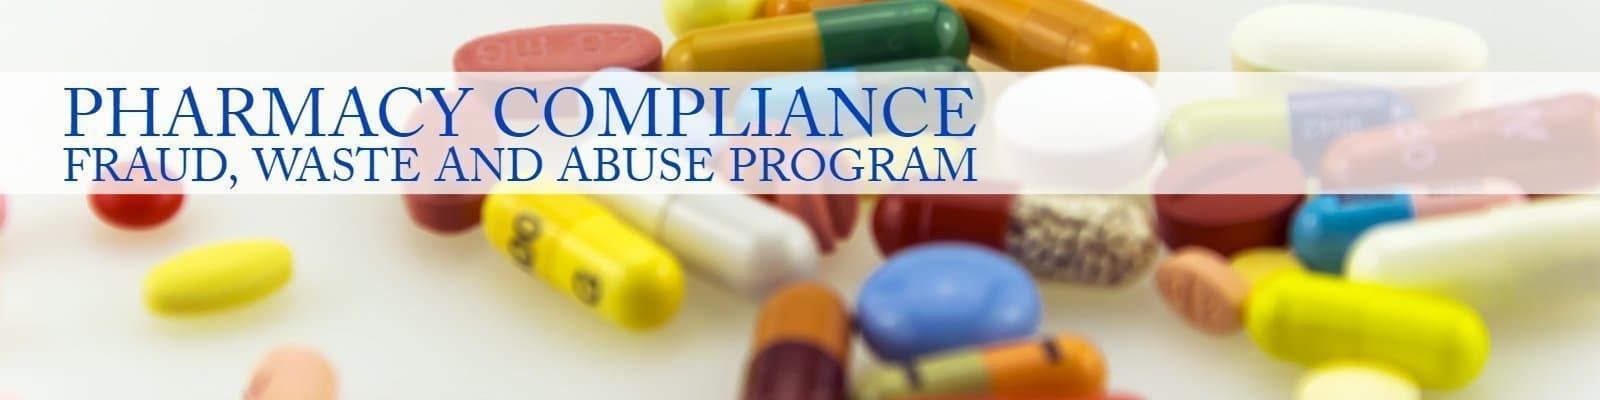 Pharmmacy FWA, Pharmacy fraud waste and abuse program, pharmacy compliance program, independent pharmacy regulatory compliance